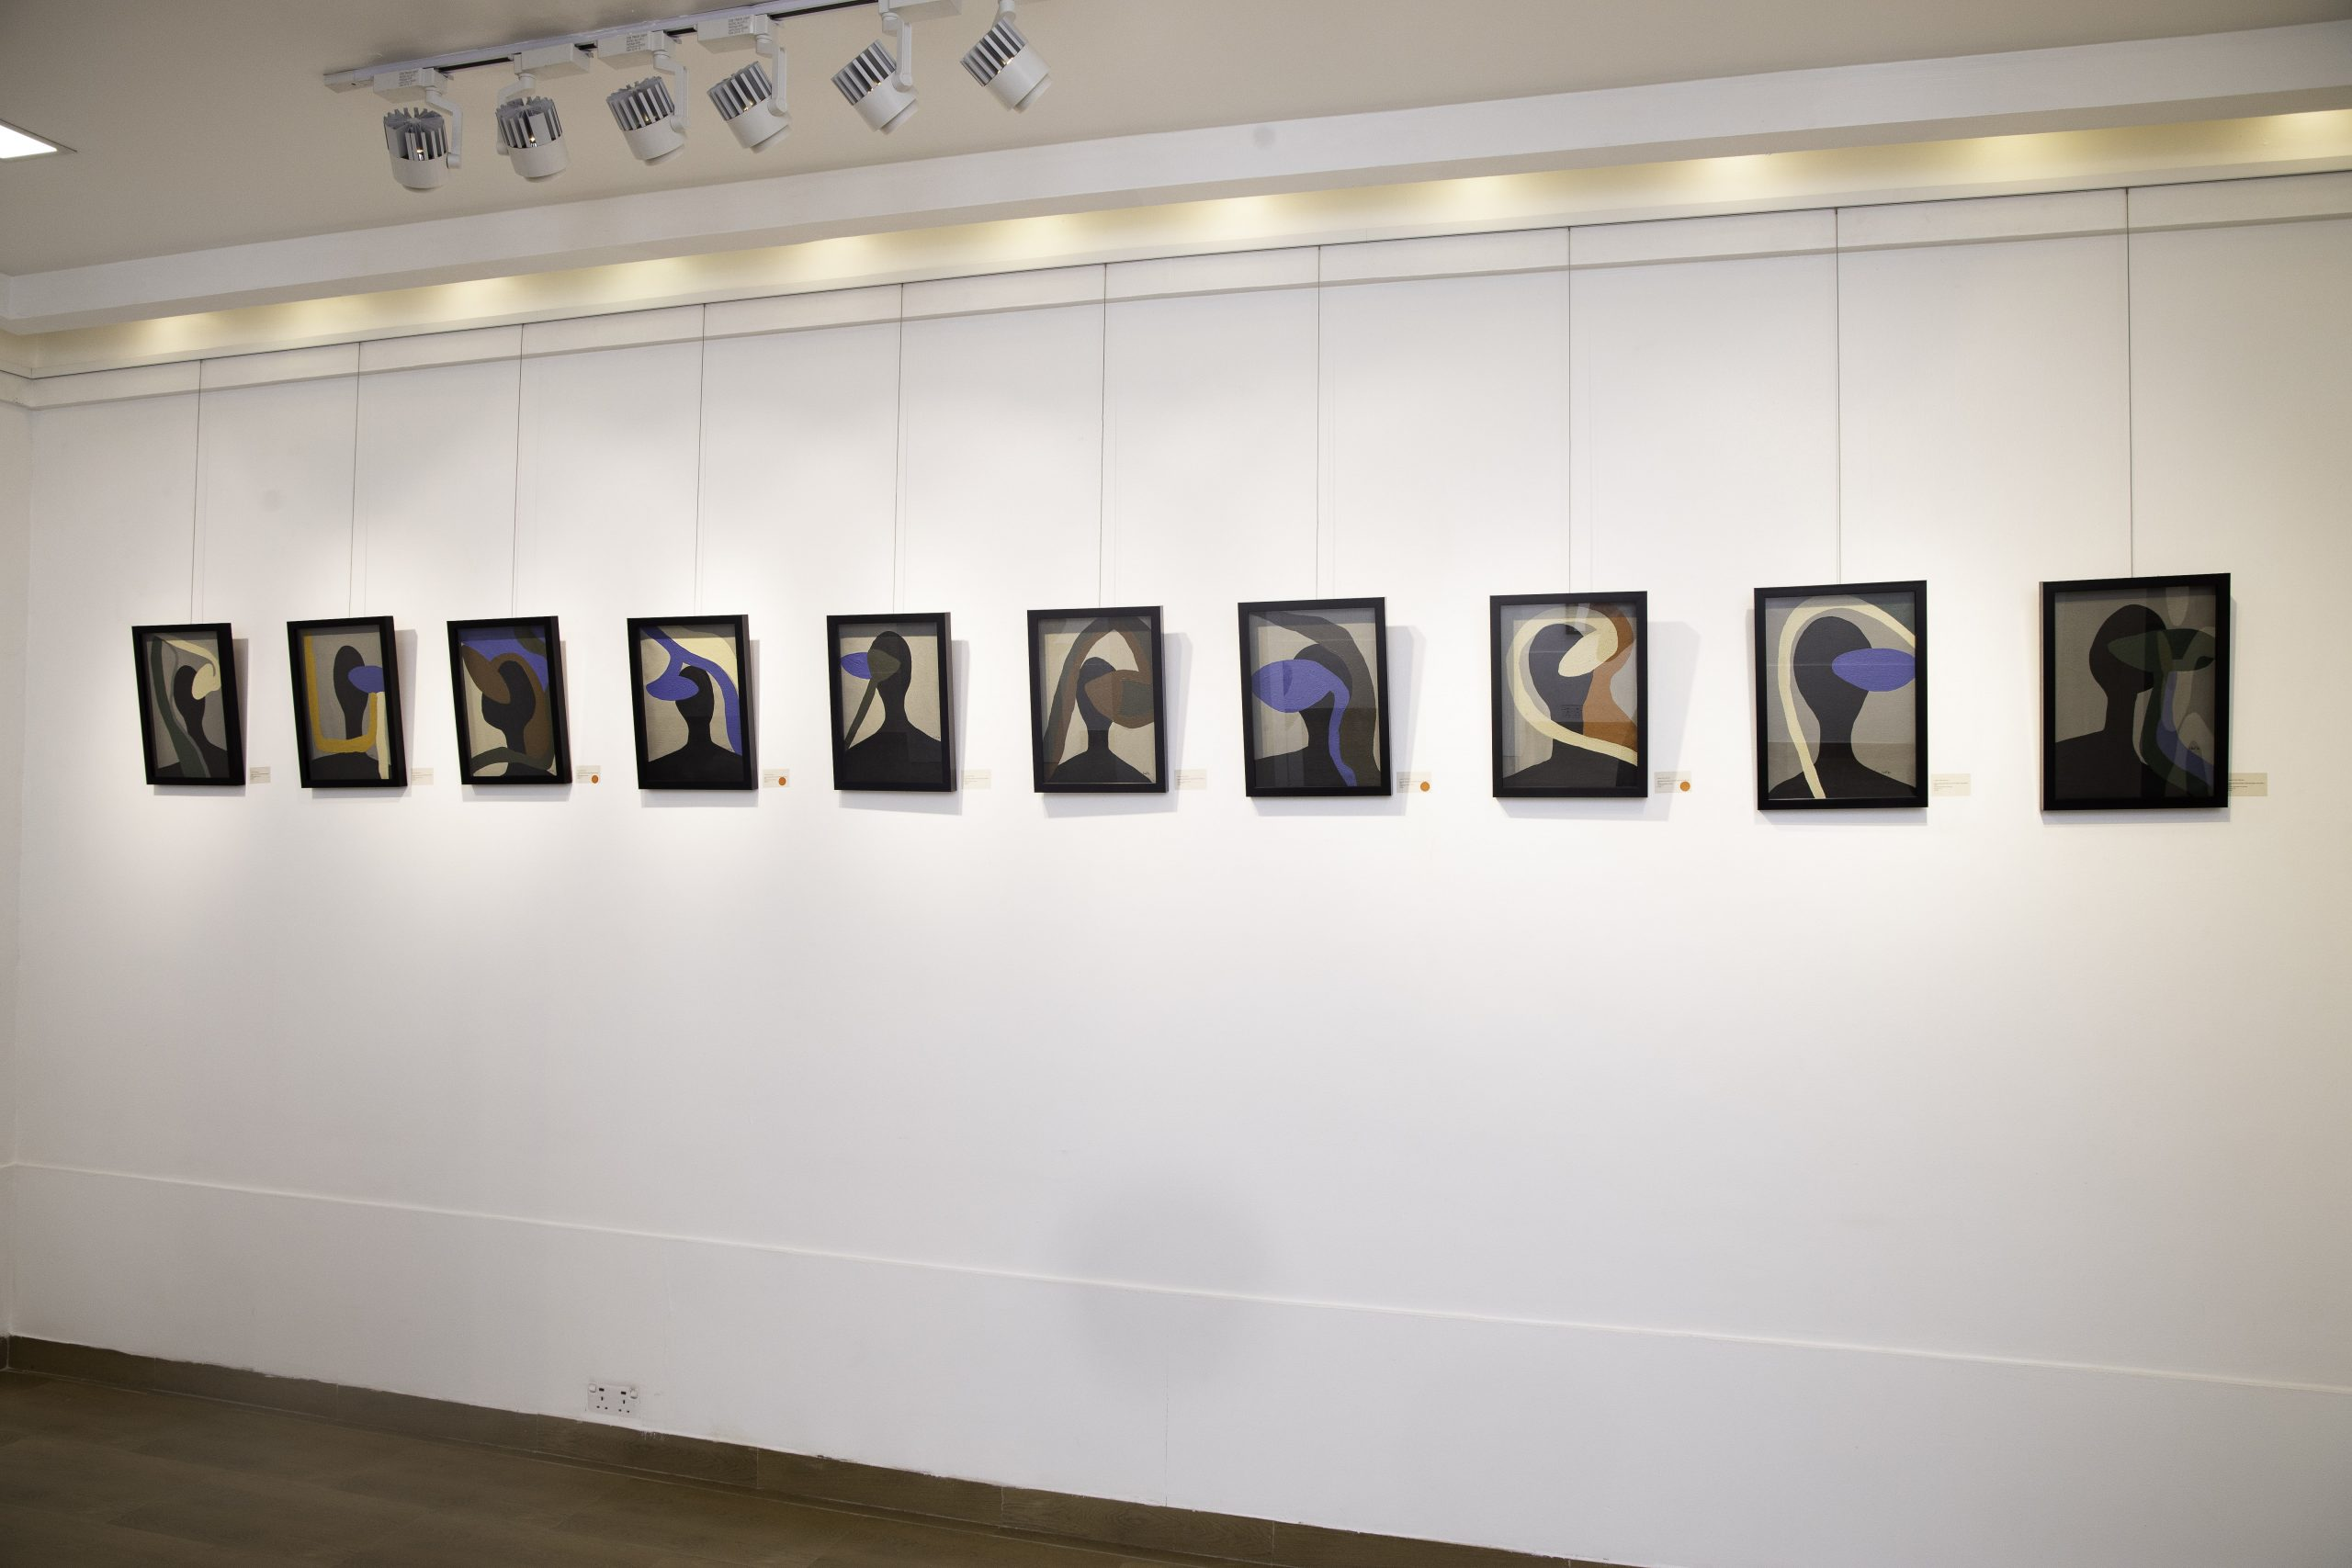 Installation view: 'A Vernacular Homage to Architecture and Design' (2021) at Affinity Gallery, Lagos